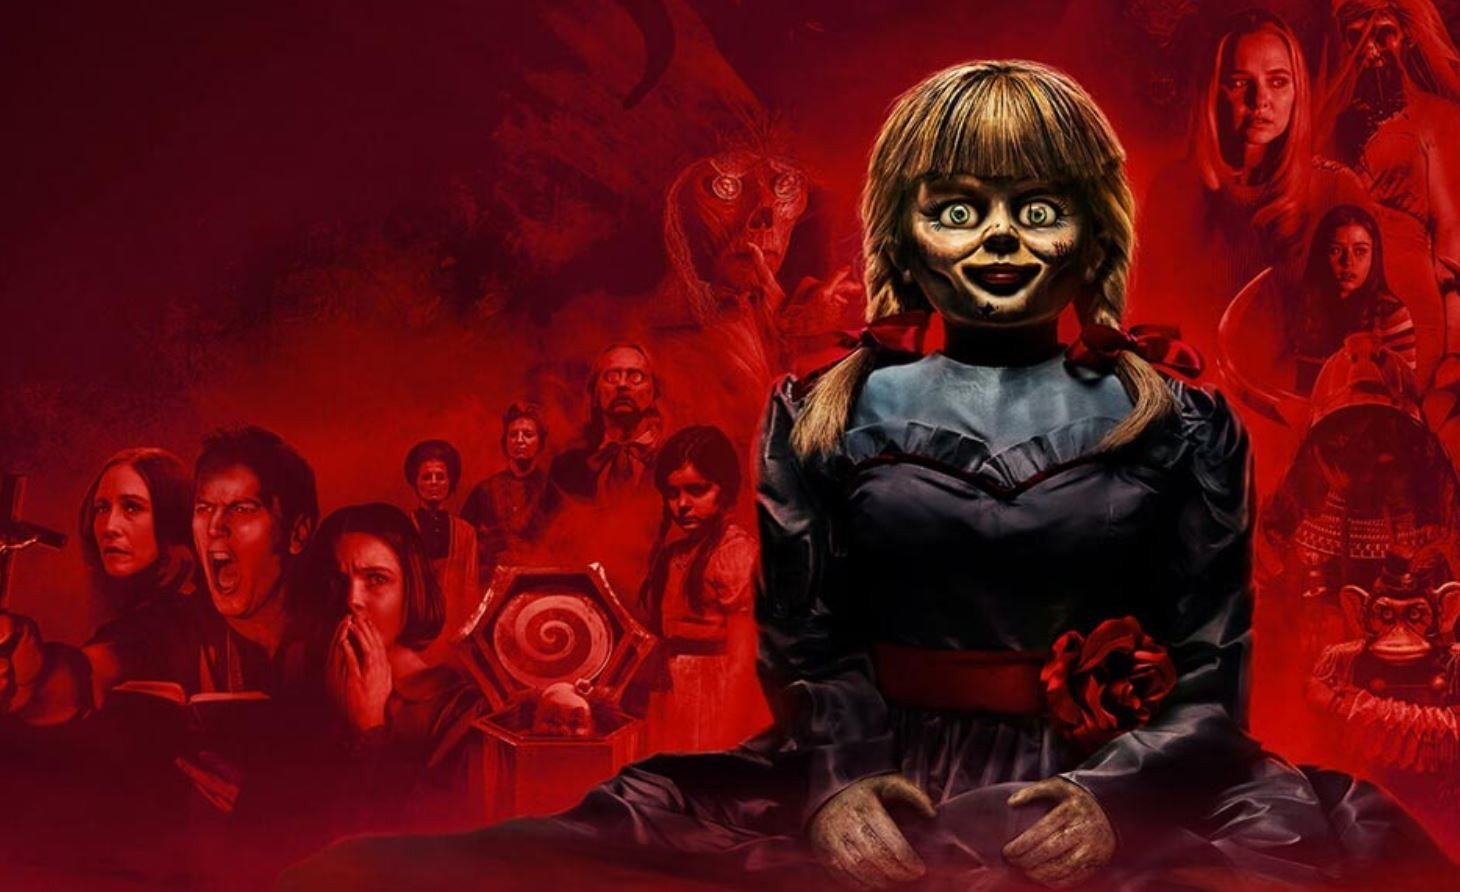 1-Annabelle Comes Home